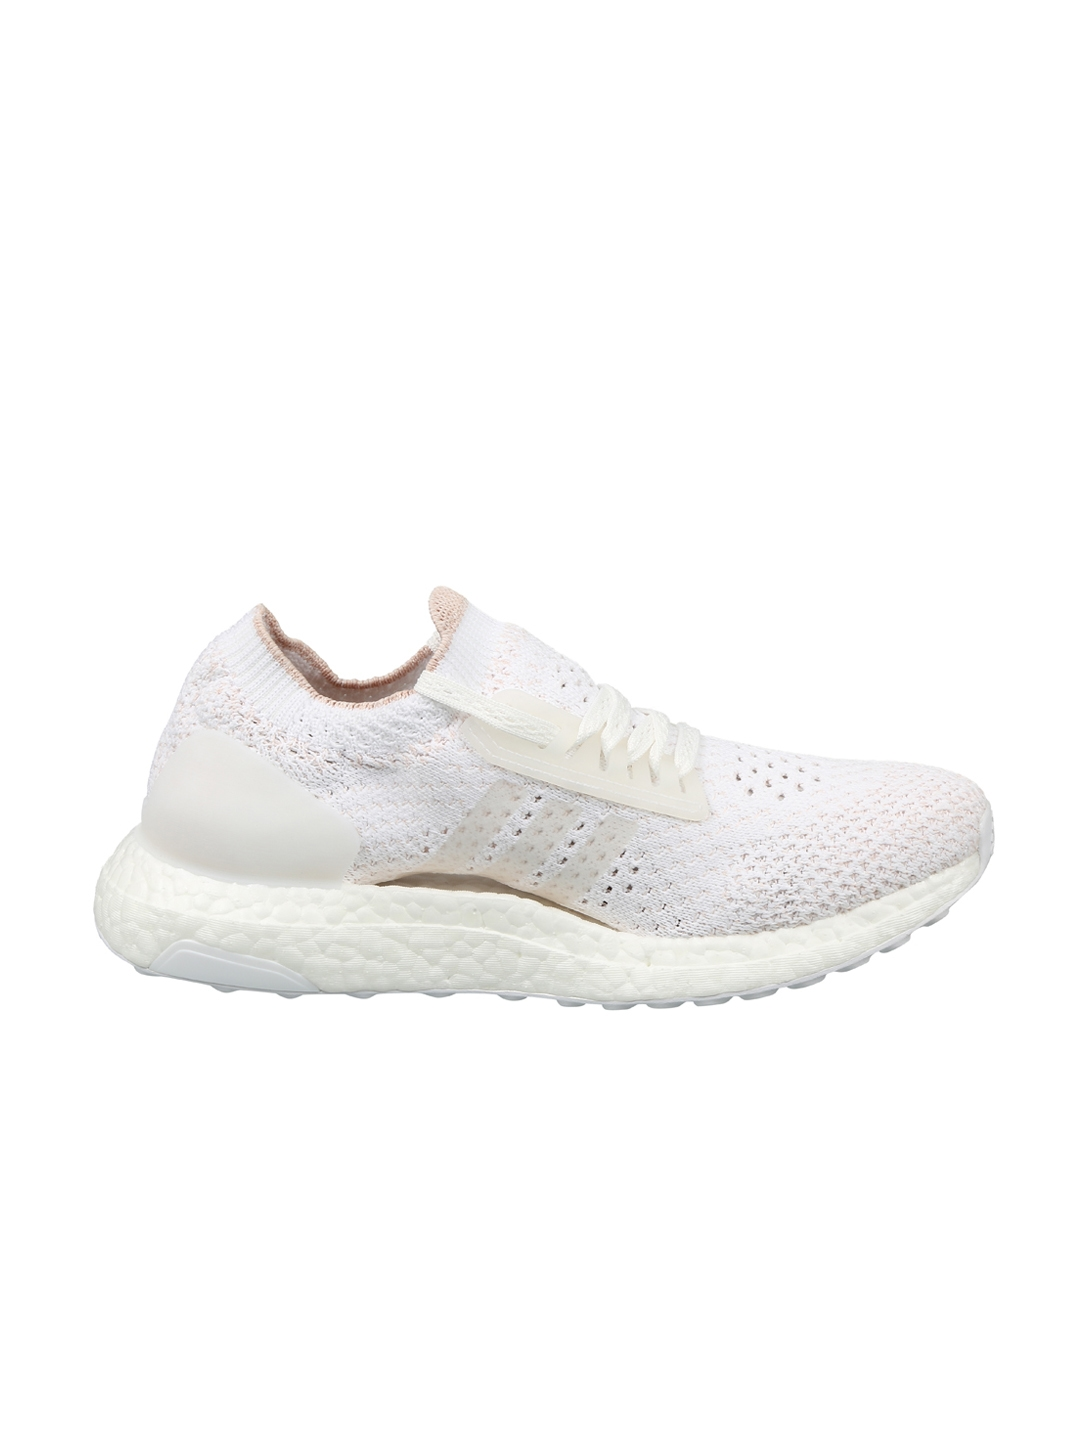 0be3fef39c939 Buy ADIDAS Women White ULTRABOOST X CLIMA Running Shoes - Sports ...